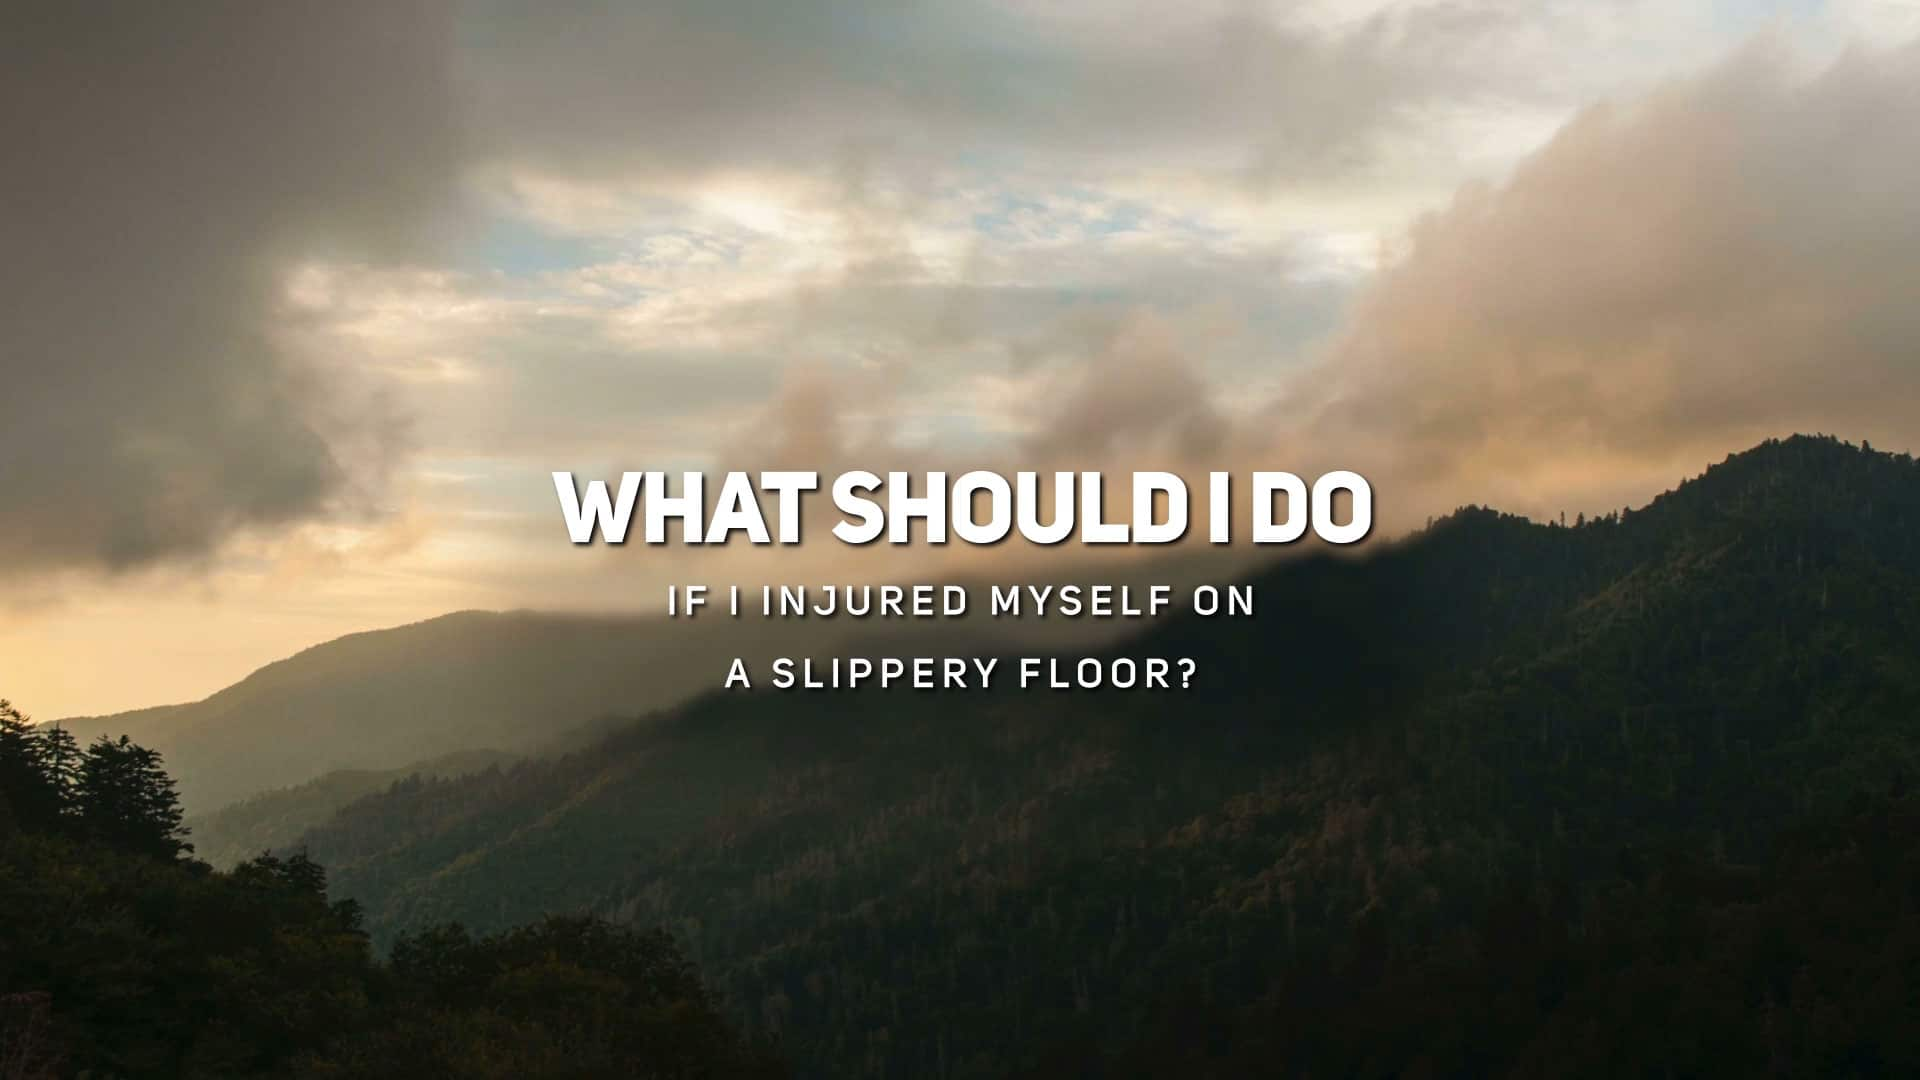 What Should I Do If I Injured Myself on a Slippery Floor